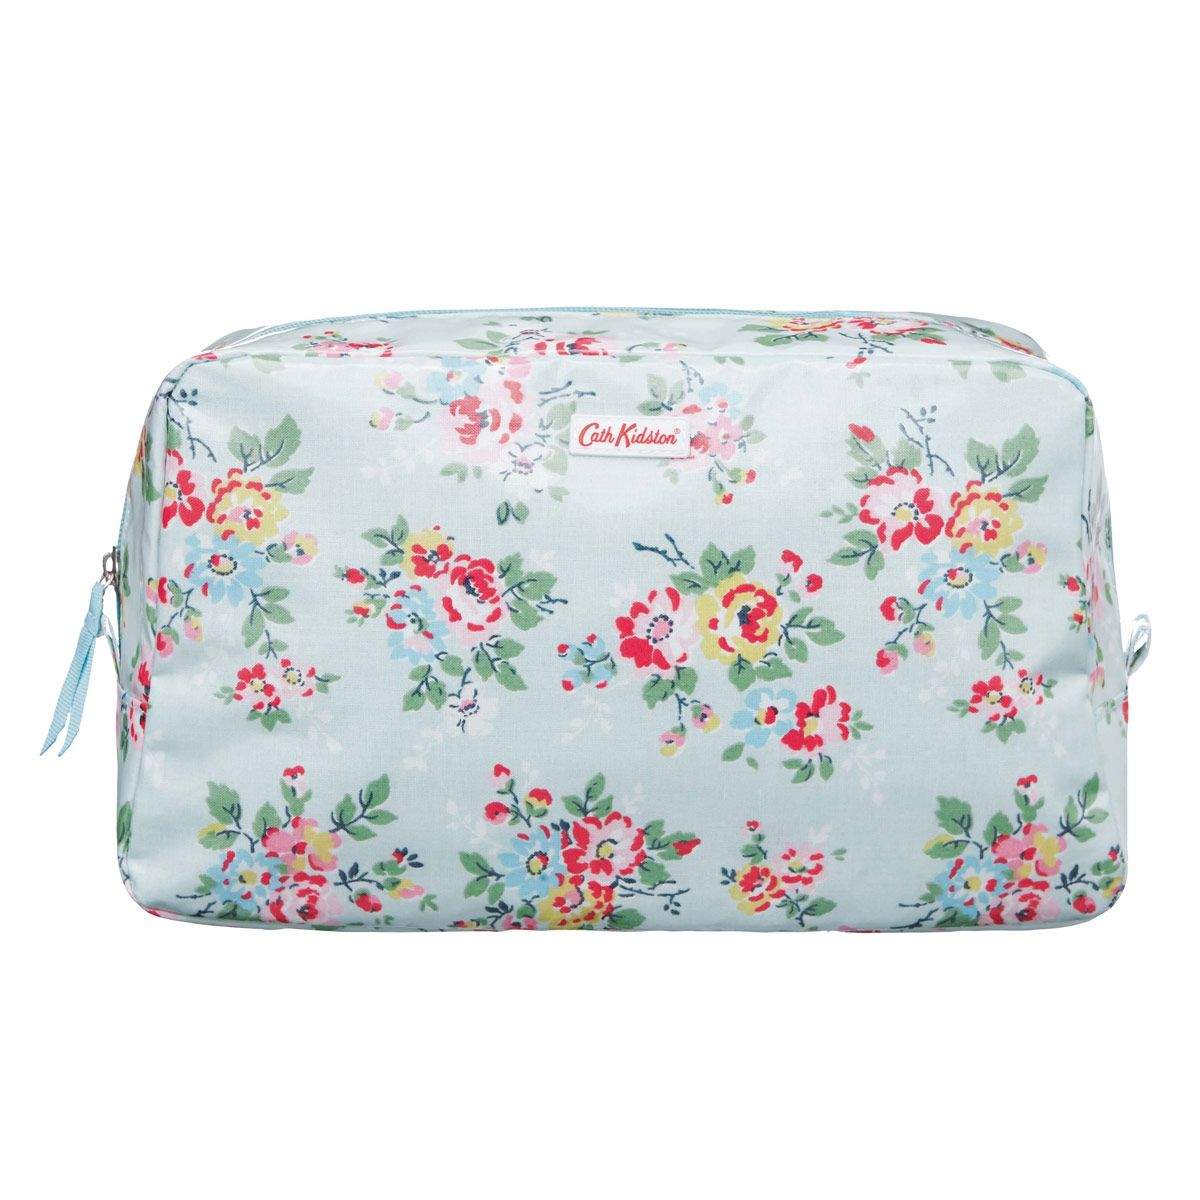 Cath Kidston Rose Wash Bag Gift Set at